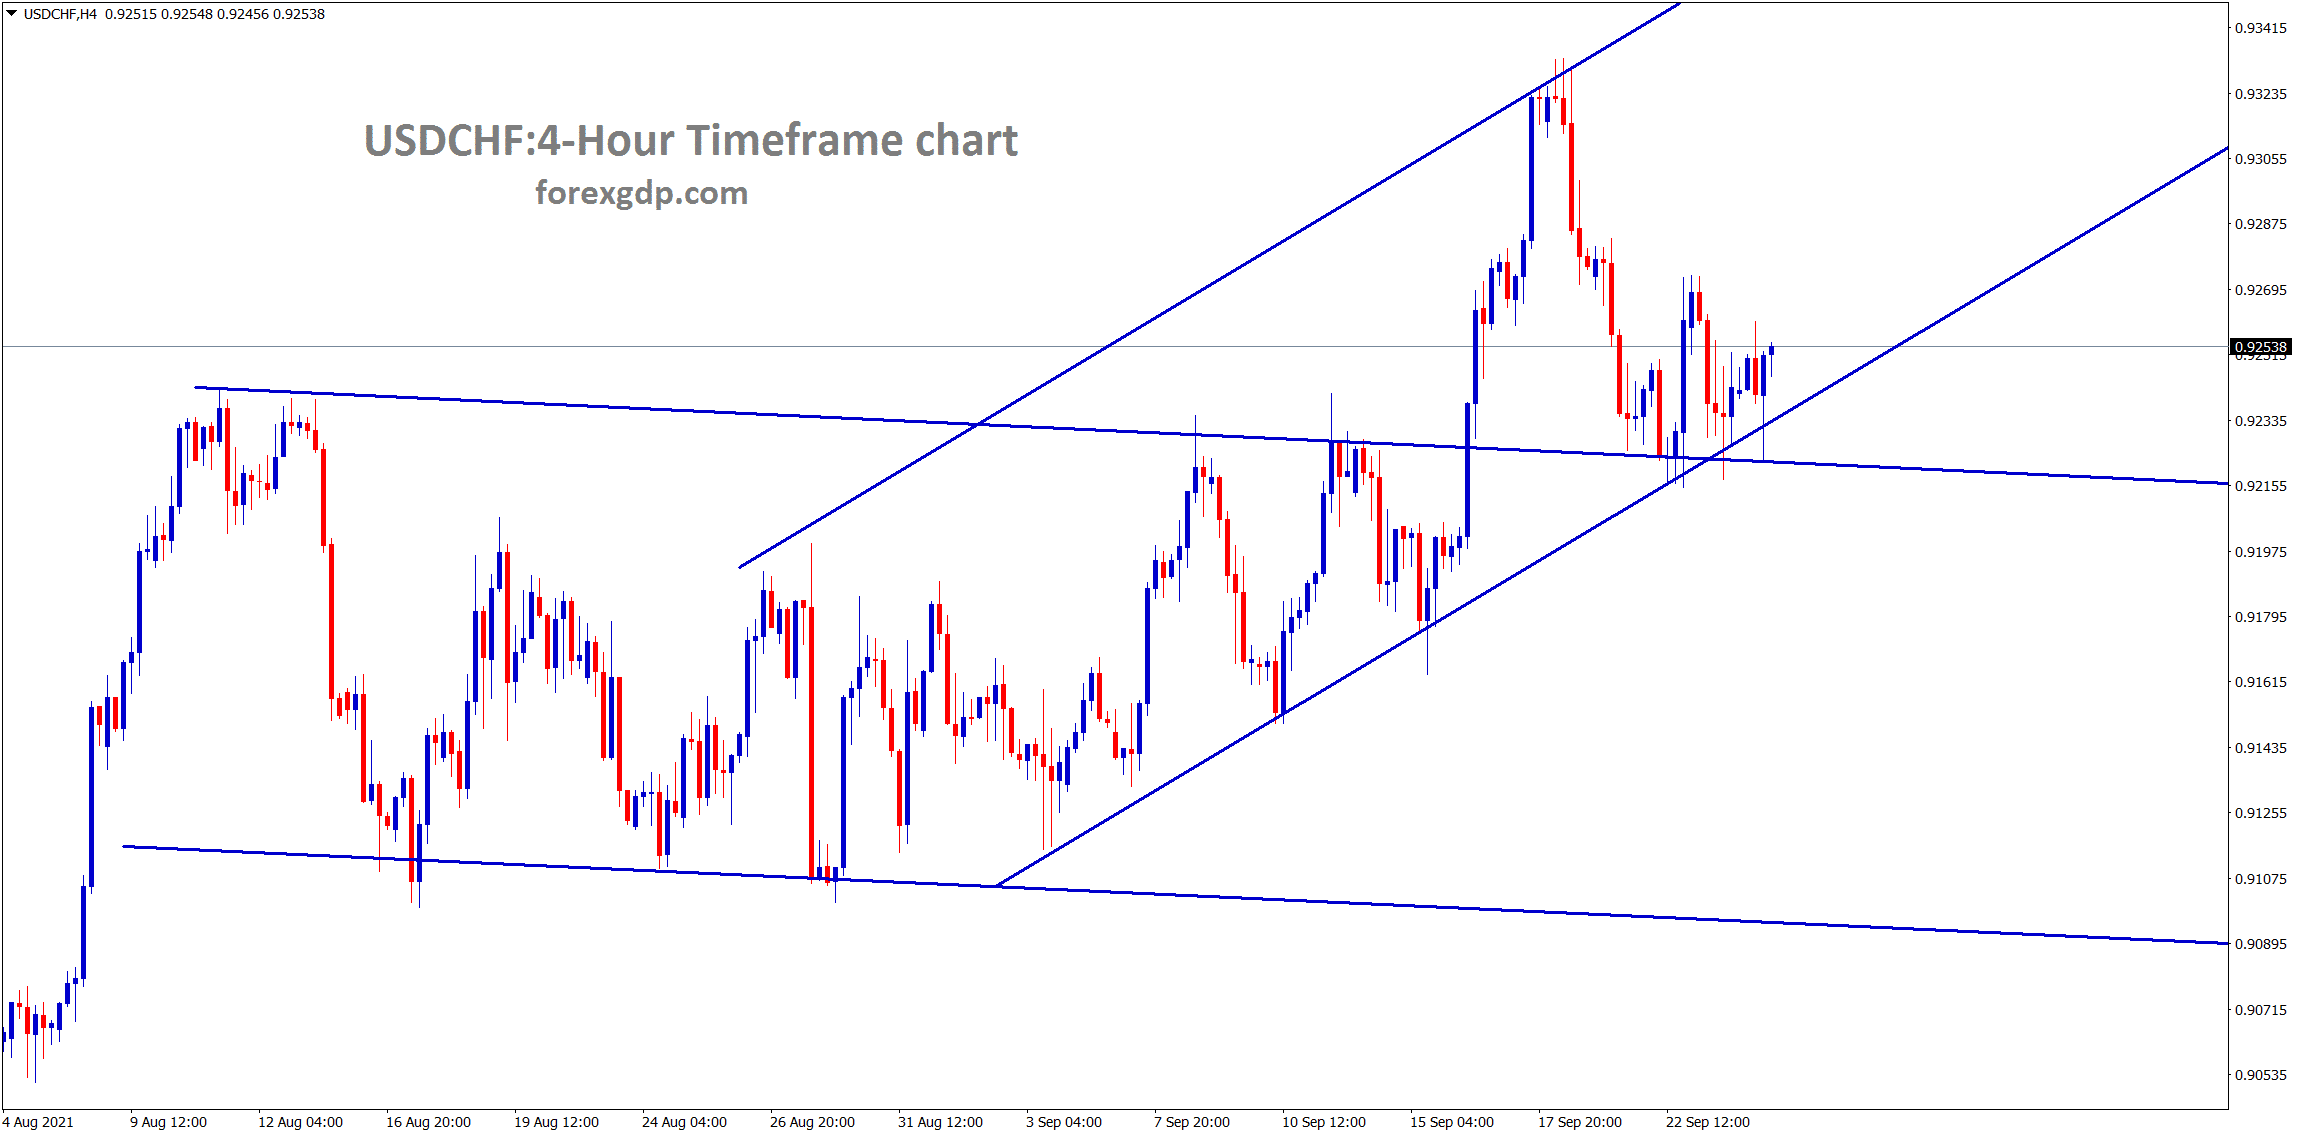 USDCHF is consolidating at the support area and the higher low of minor uptrend line